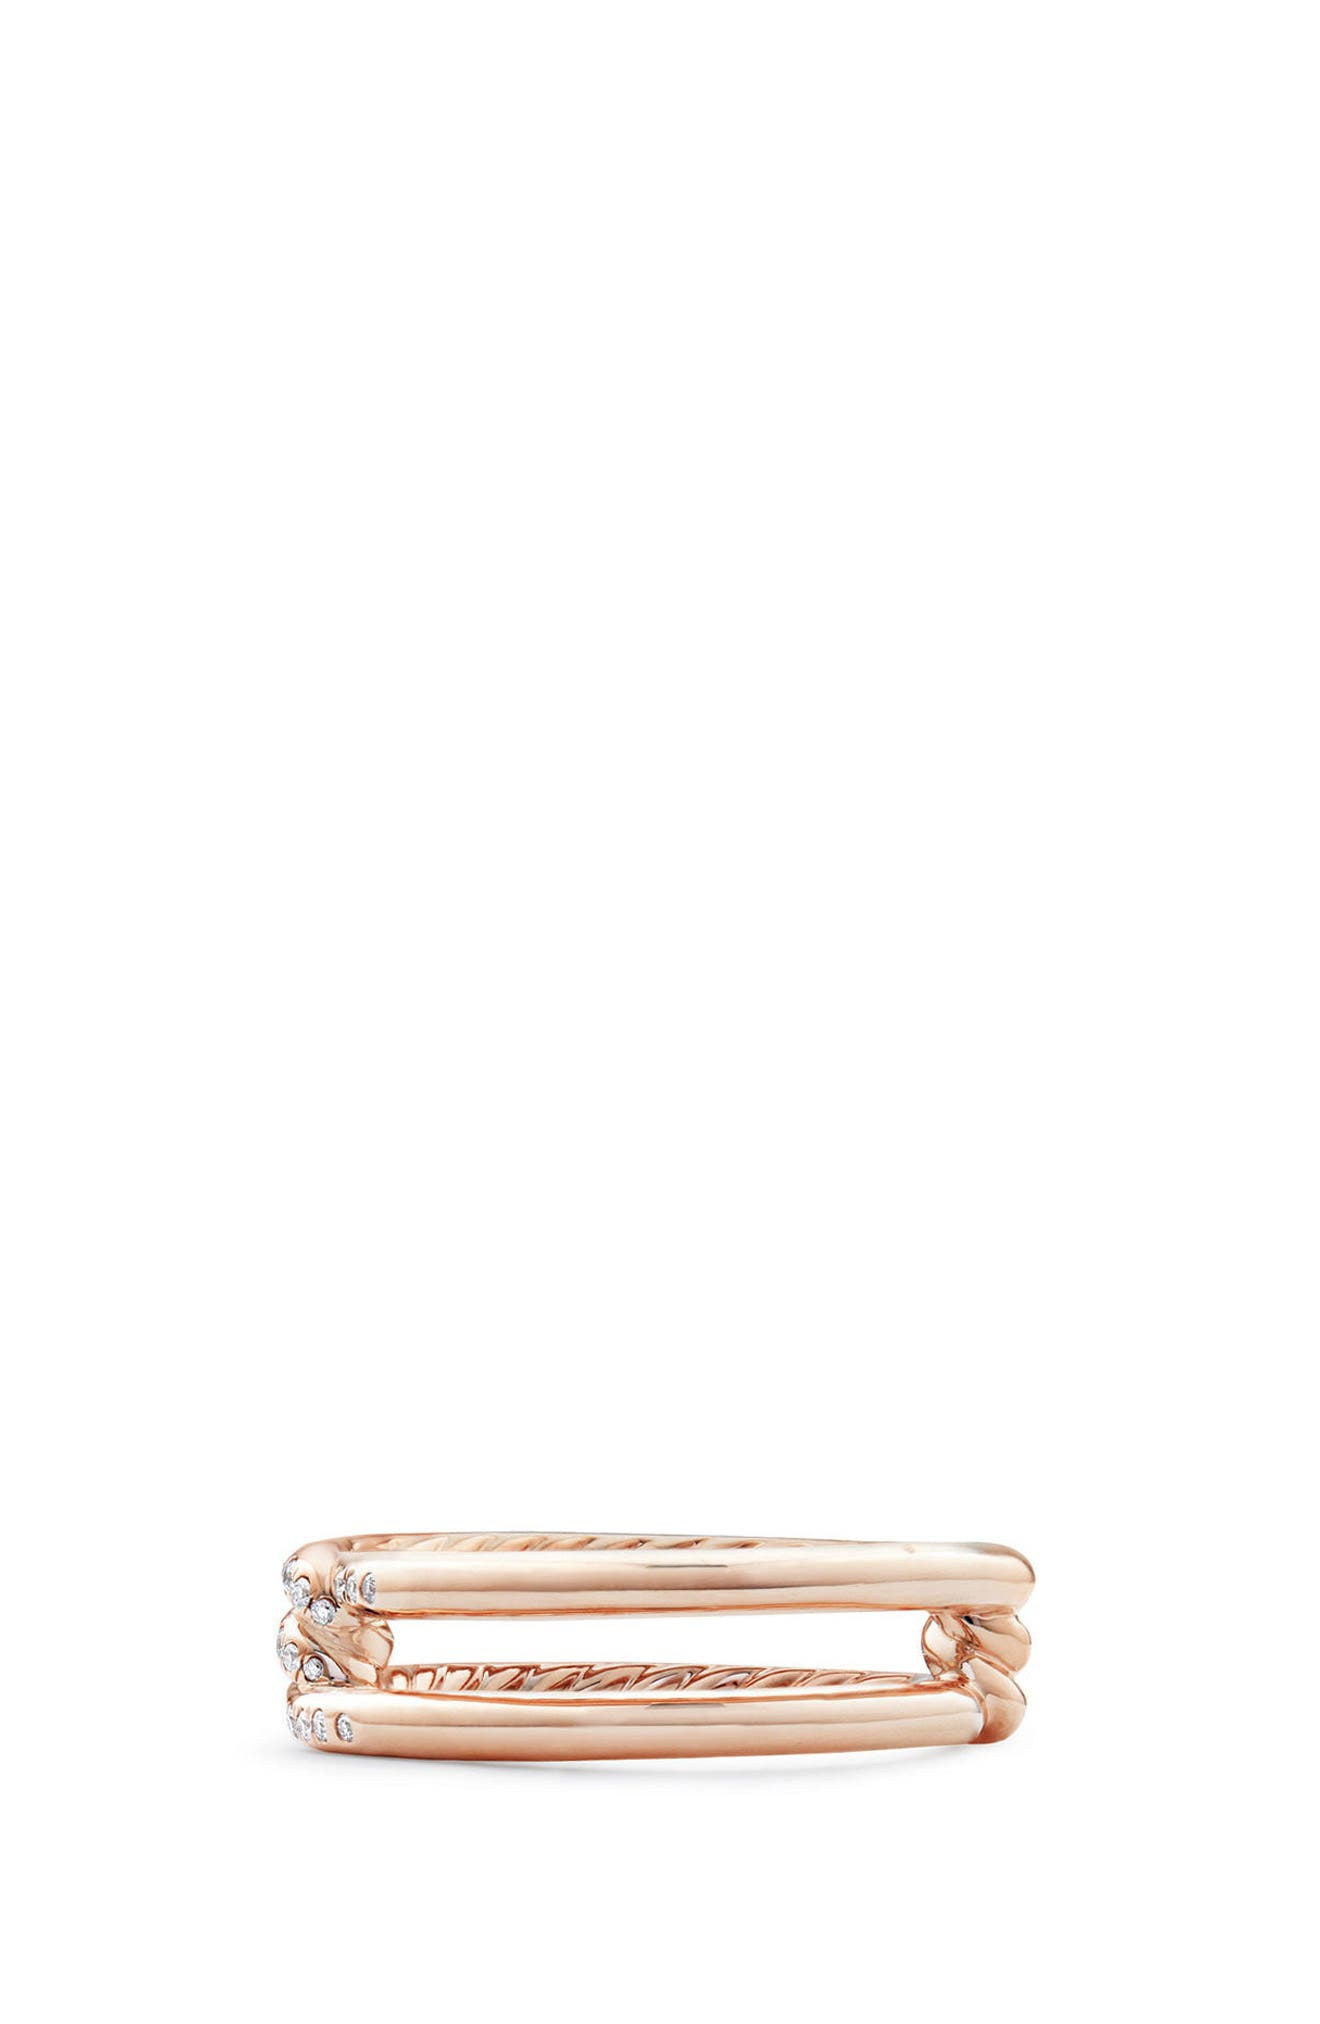 Continuance Band Ring with Diamonds in 18k Gold, 6.5mm,                             Alternate thumbnail 3, color,                             ROSE GOLD